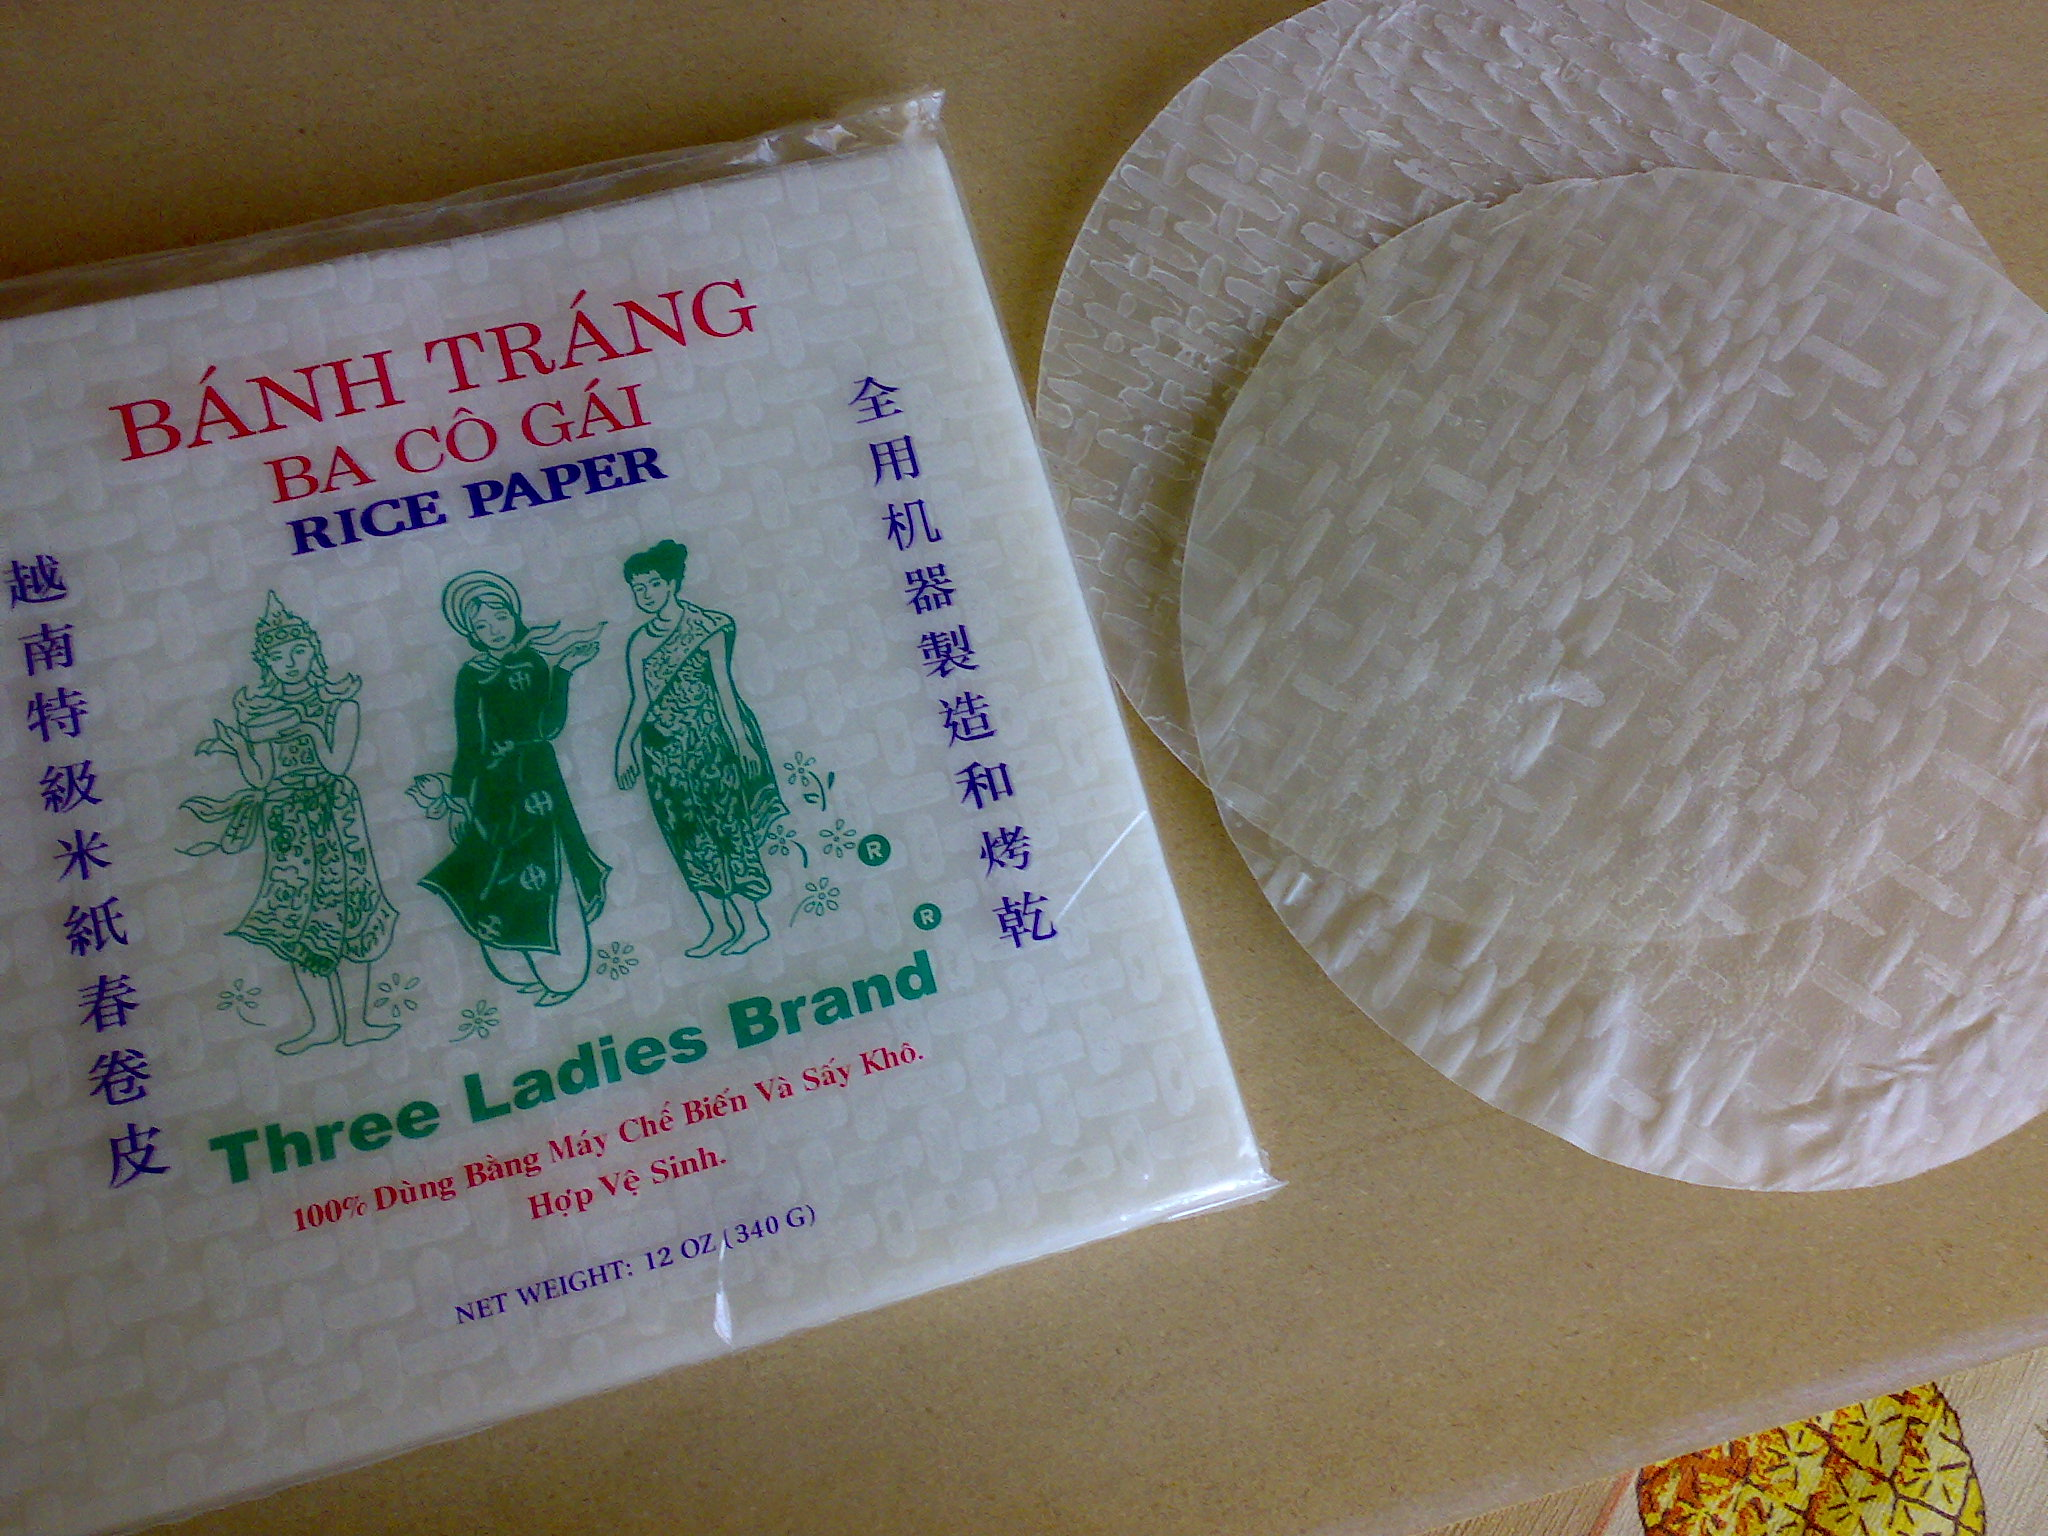 rice papers The chinese rice paper store offers art papers suitable for brush painting, calligraphy or craft projects our chinese rice paper and related art supplies are carefully chosen by our staff to provide our customers with quality products at a reasonable price.